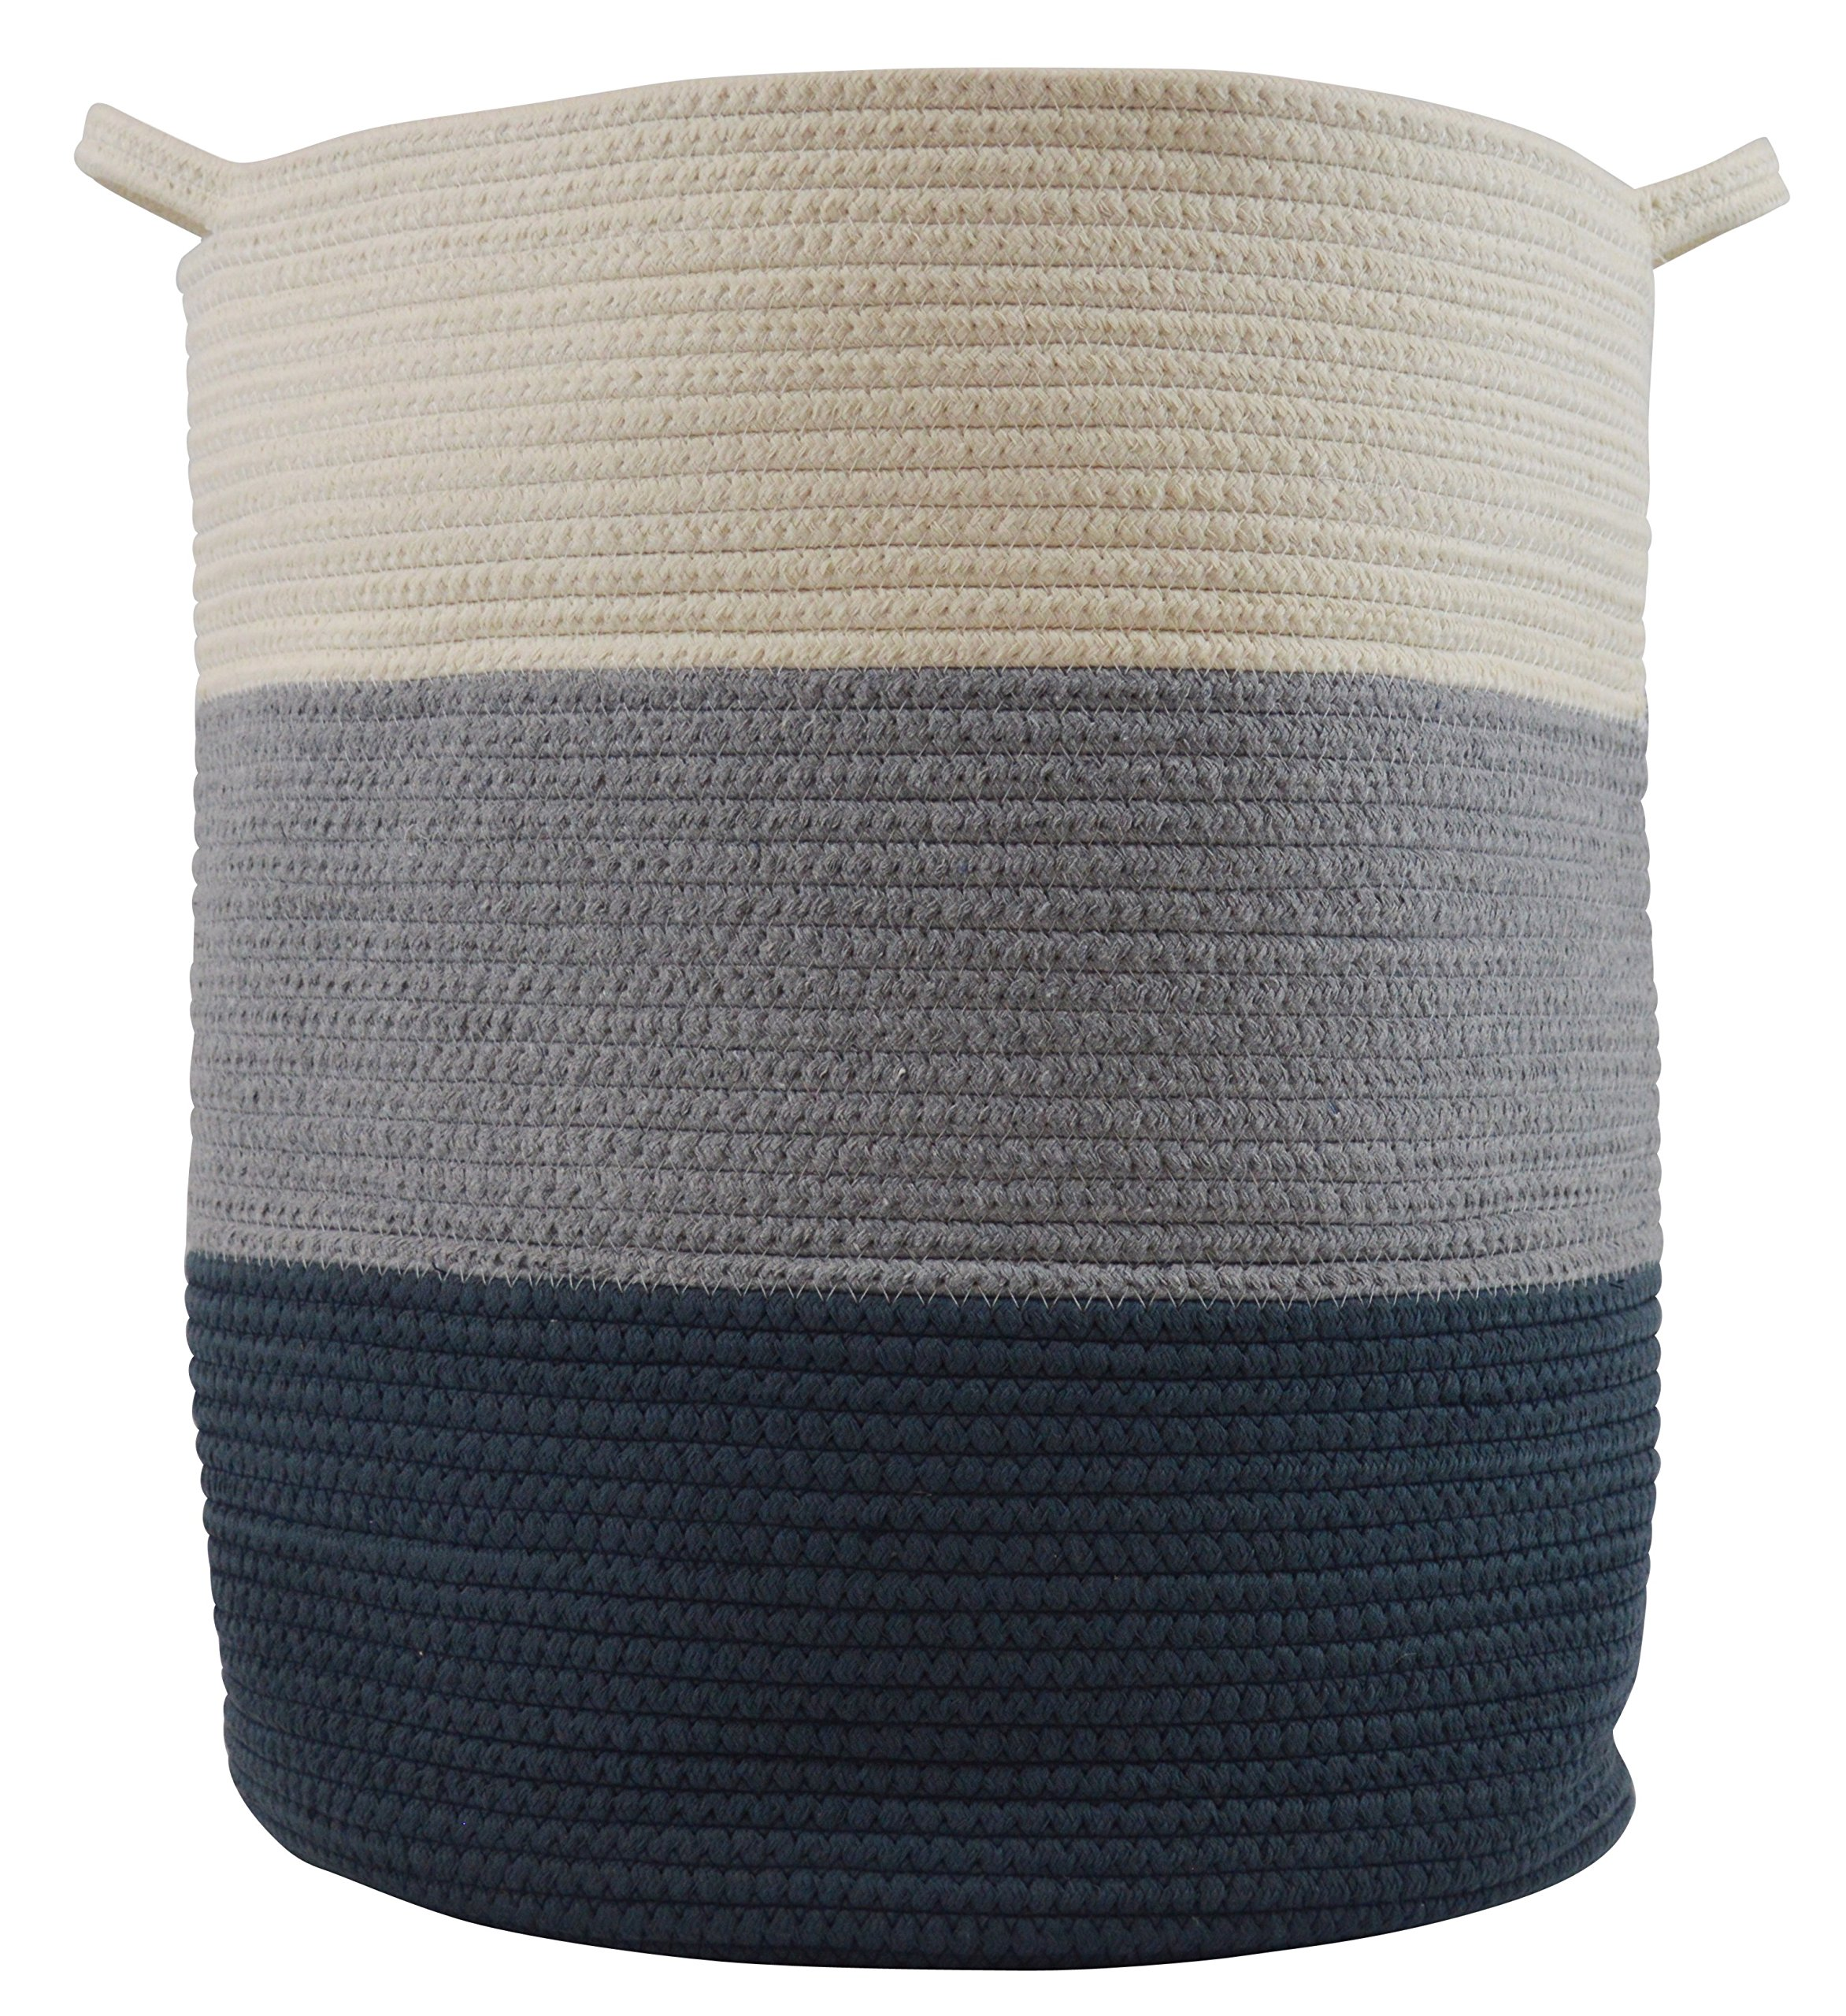 Cotton Rope Basket for Storage and Organization in Baby Nursery or Kids Room | Extra Large 18'' x 16'' Decorative Laundry Hamper, Organizer for Blankets, Towels, Toys, Books | Blue/Grey/Off-White by Sellaro Home